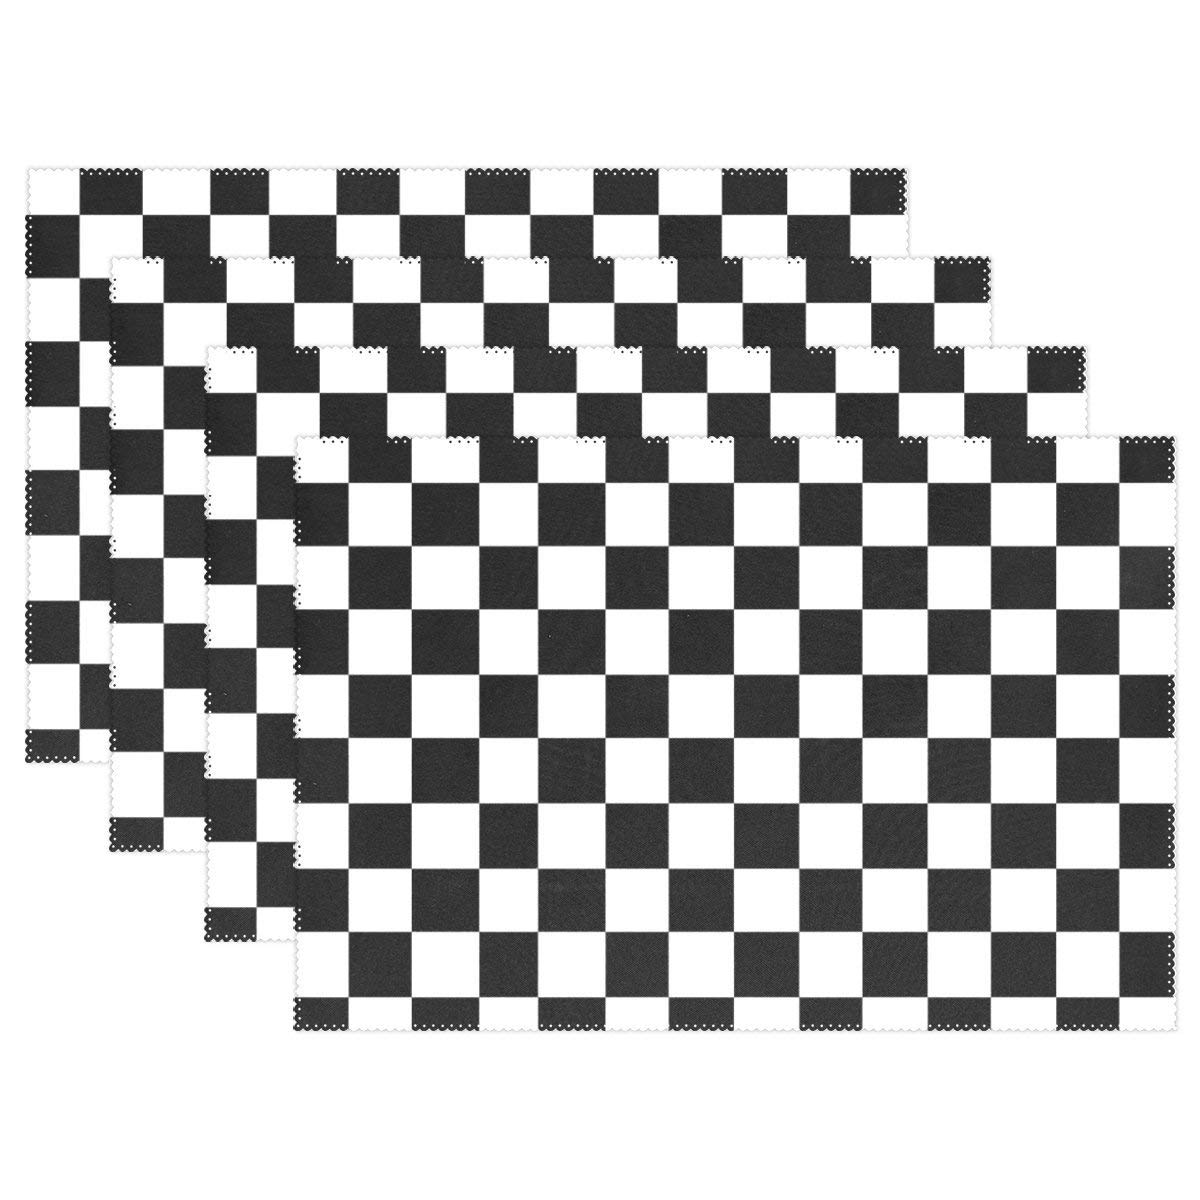 """THENAHOME Placemats Set of 6,4 or 1 Table Mats with Black White Checkerboard Heat Stain Resistant Anti-Skid Eat Mats for Kitchen Dining Table (12""""x 18"""")"""